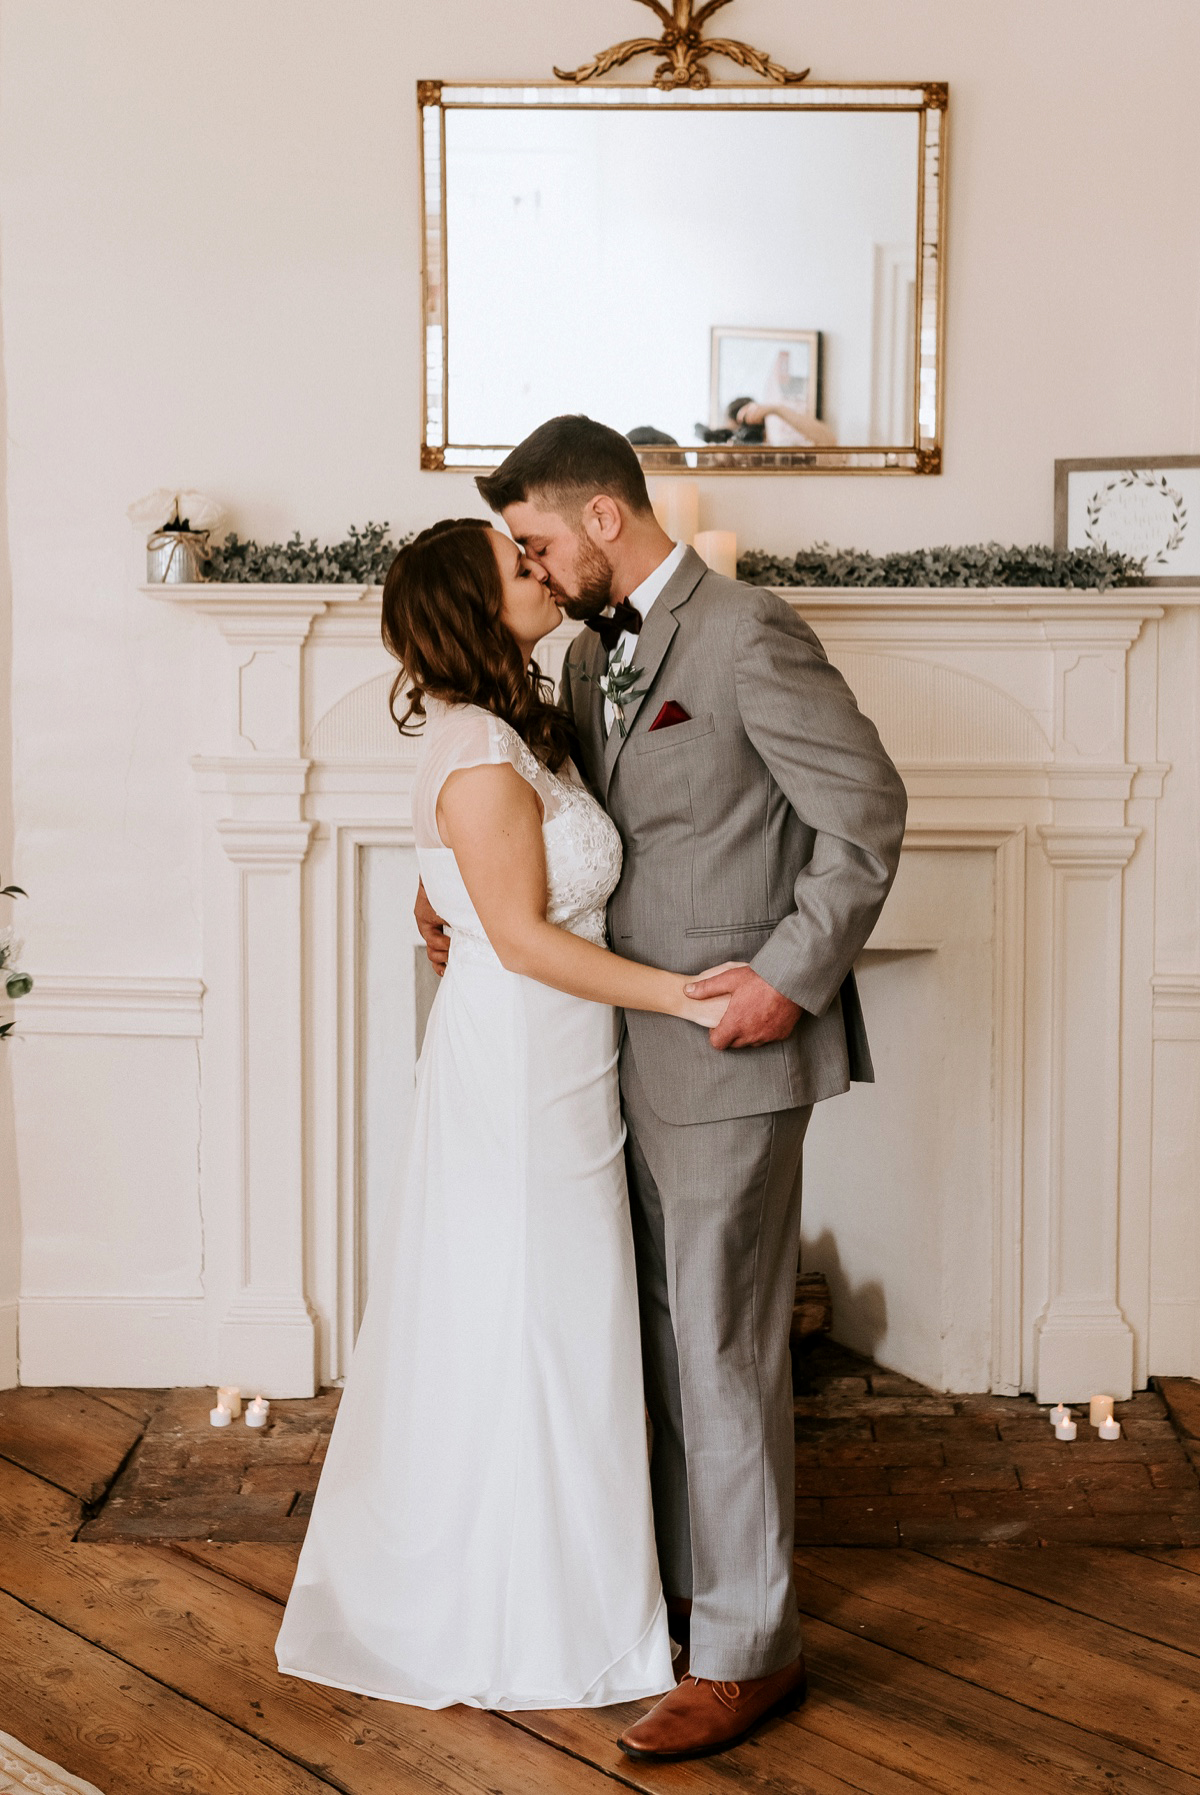 29 The Inn At Glencairn Destination Wedding Photographer Winter Elopement New Jersey Wedding Photographer Intimate Wedding